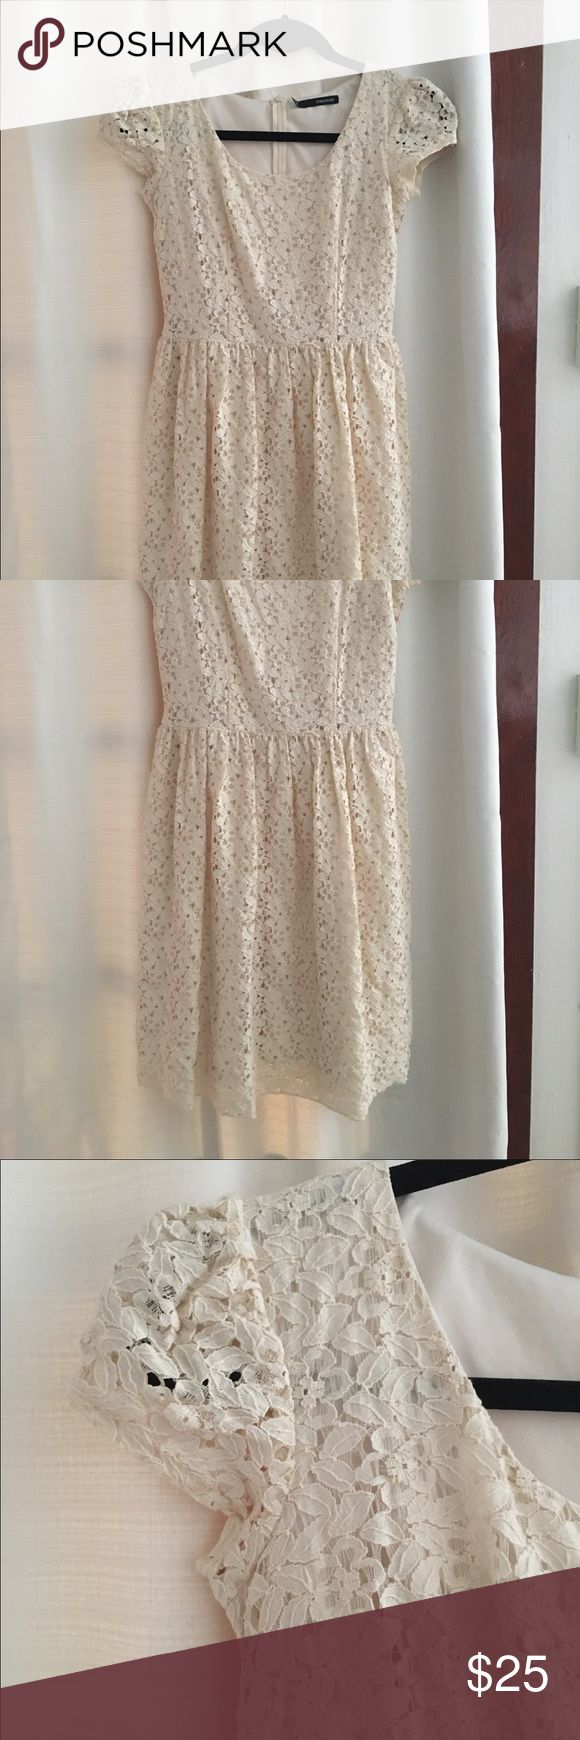 White lace dress Worn to an occasion, but was too long (I'm petite) Dresses Midi